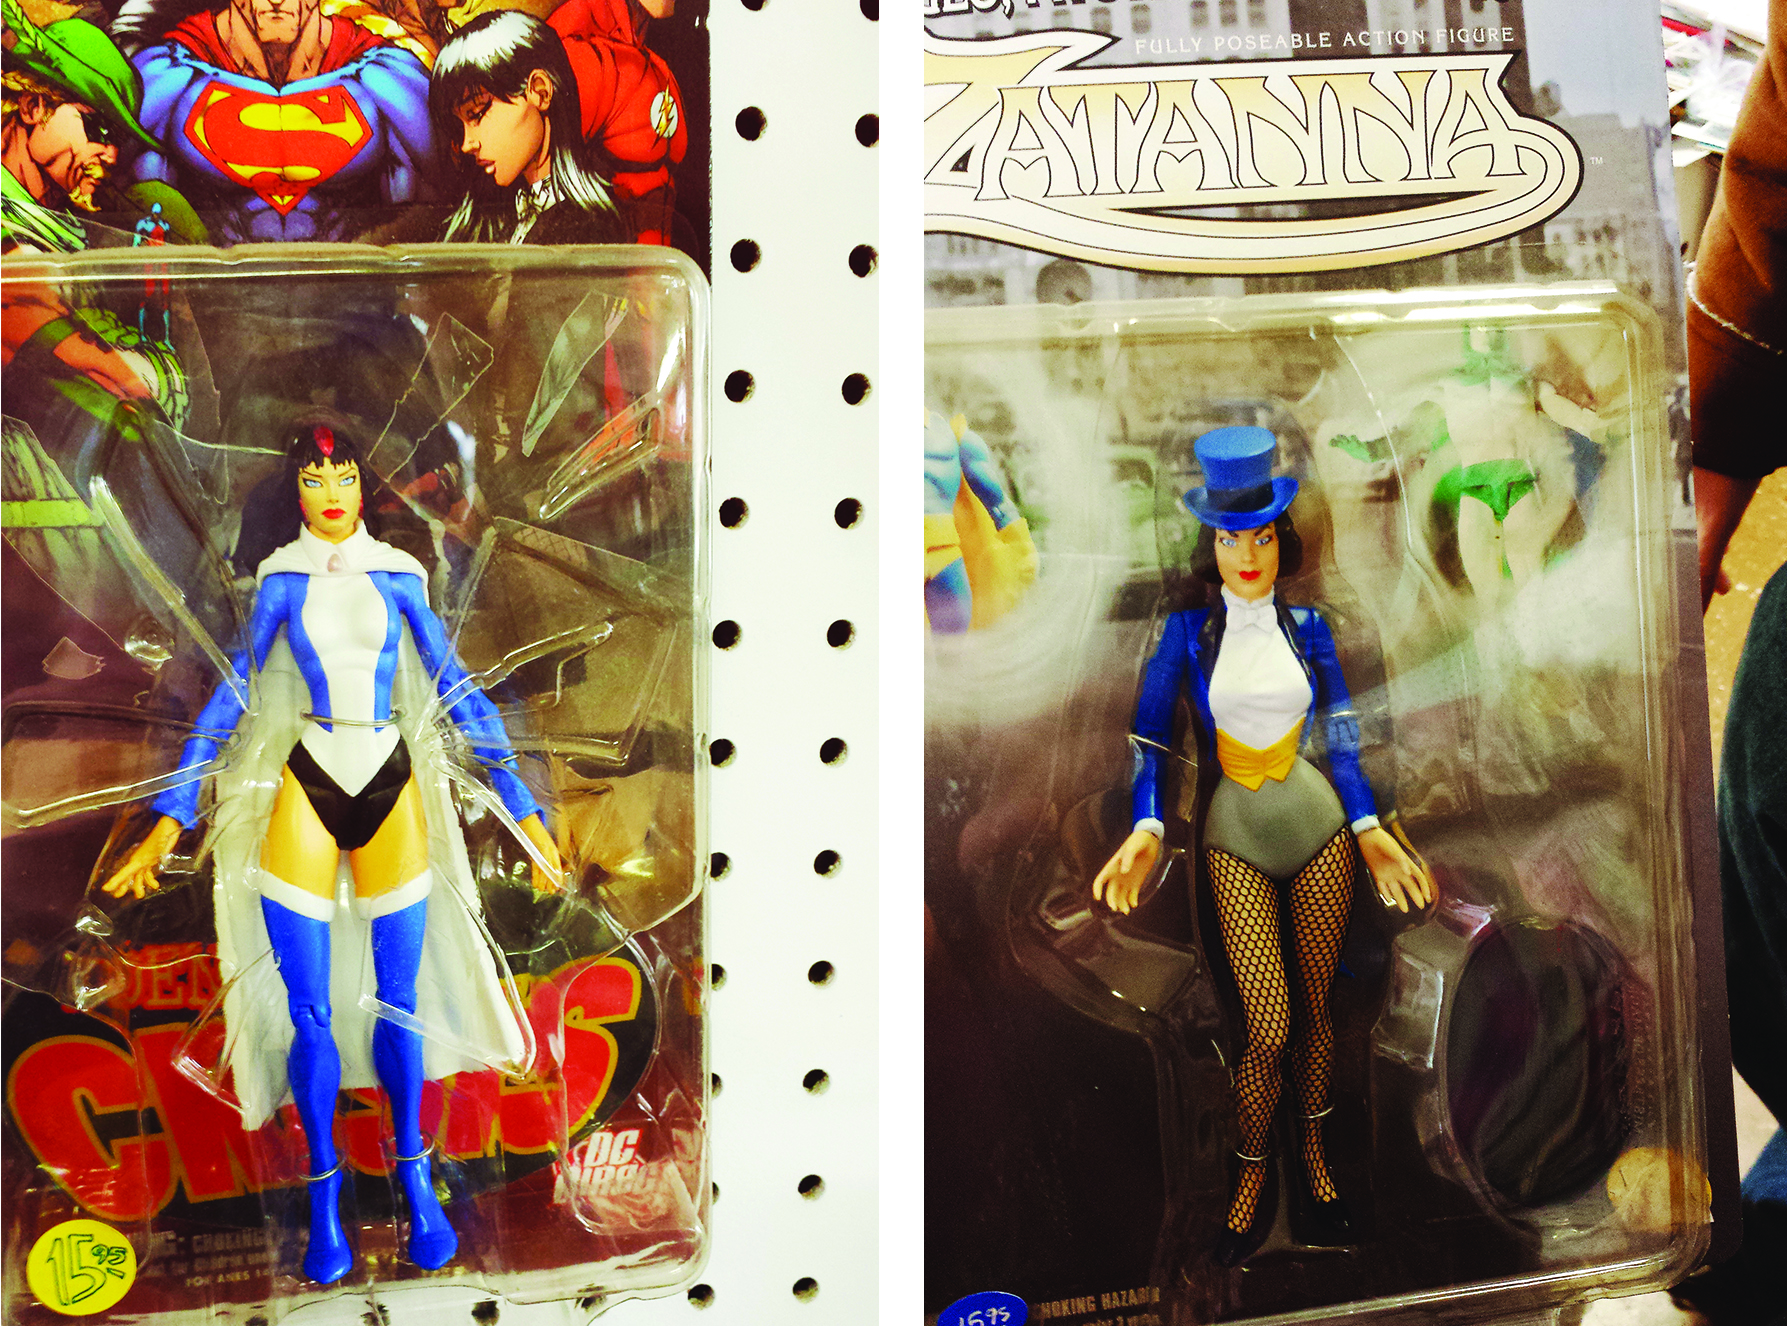 Some groovy Zatanna figures.